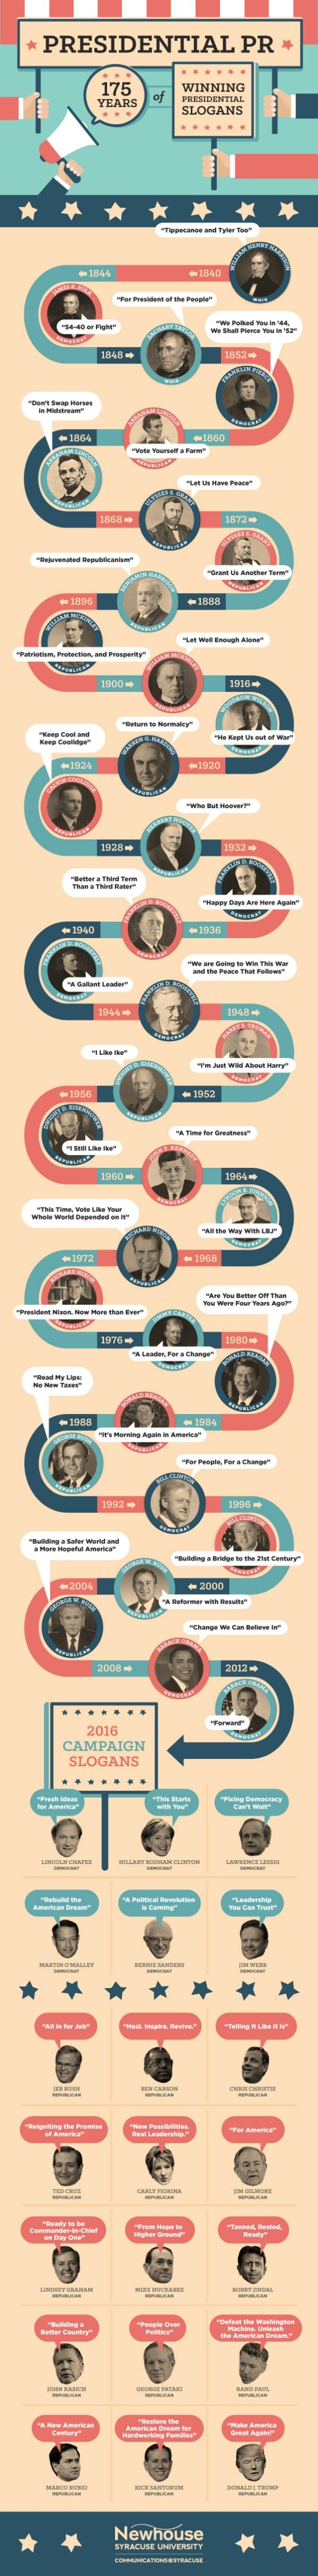 An infographic of presidential campaign slogans yields little correlation between a good slogan and a successful presidency.